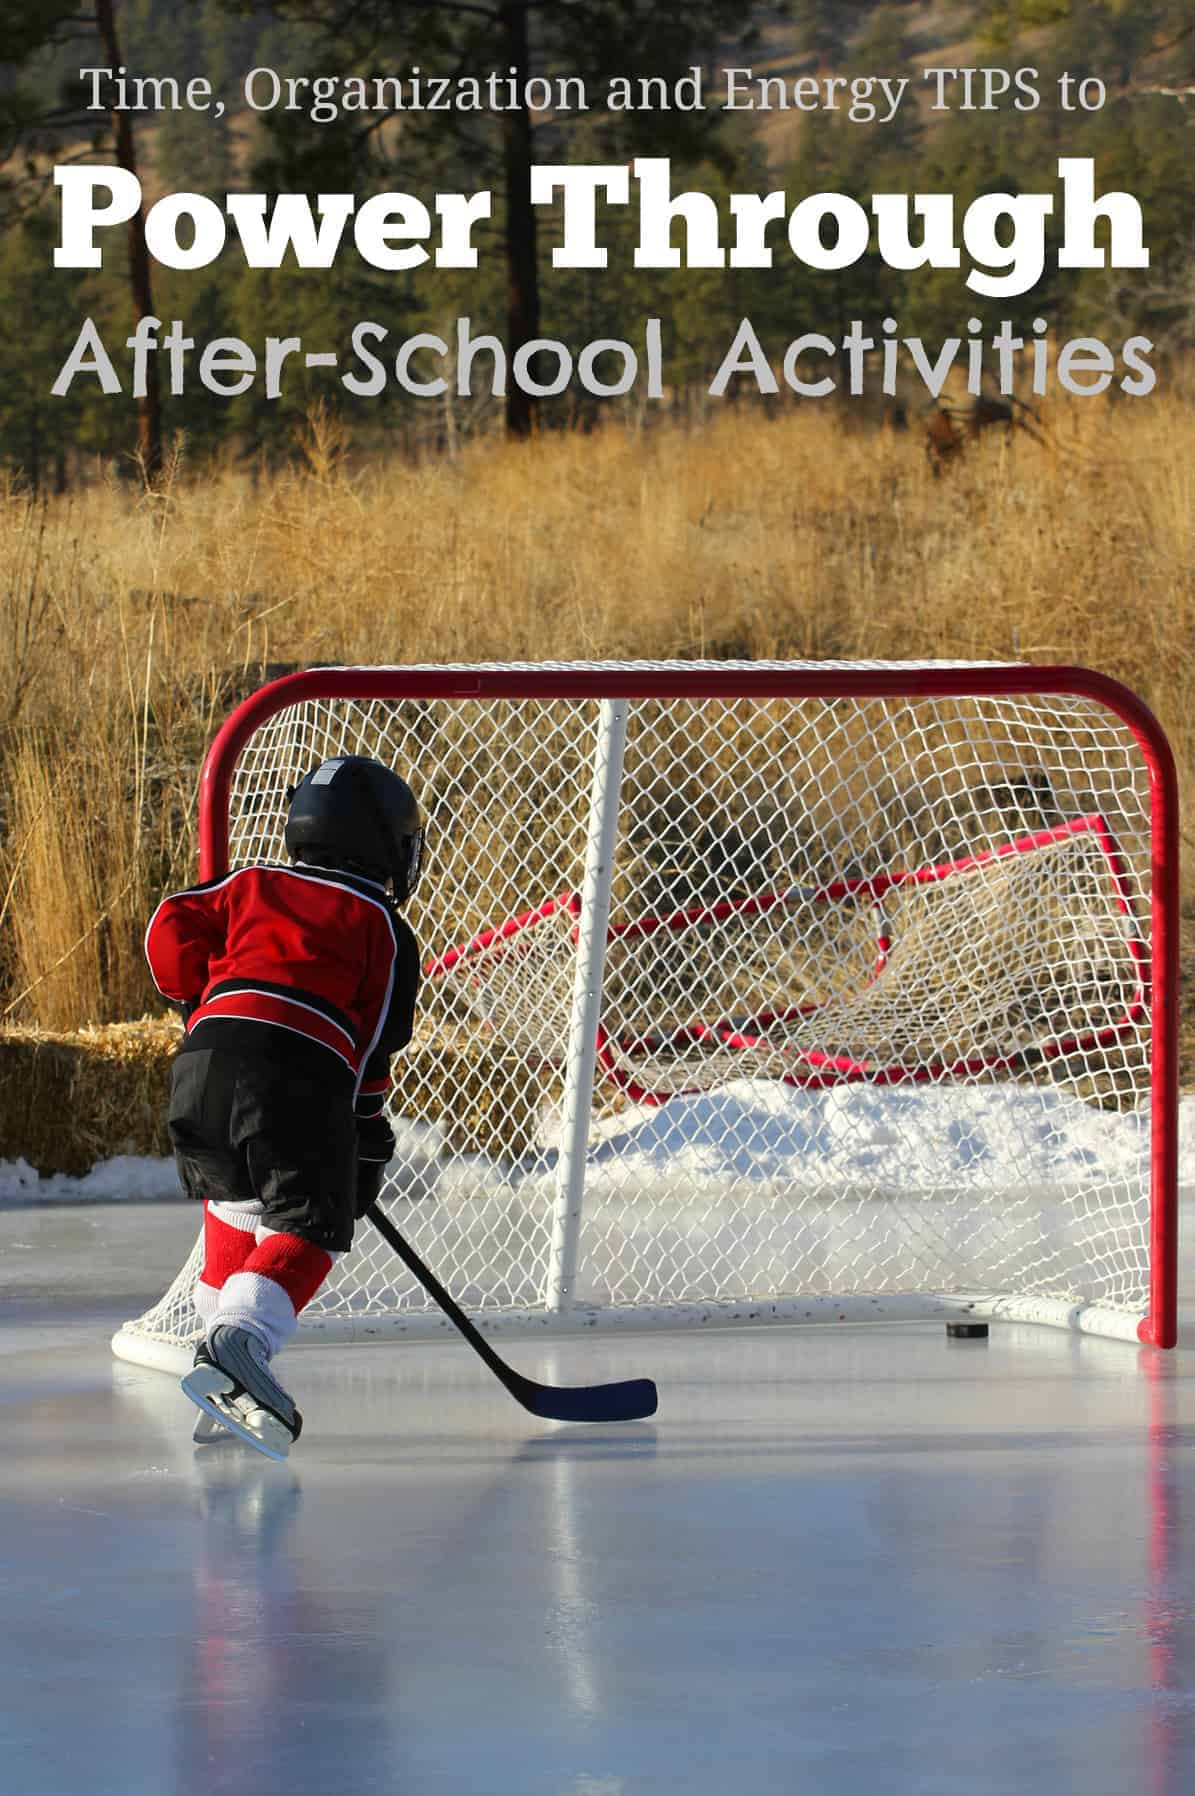 Tips to Power Through After-School Activities